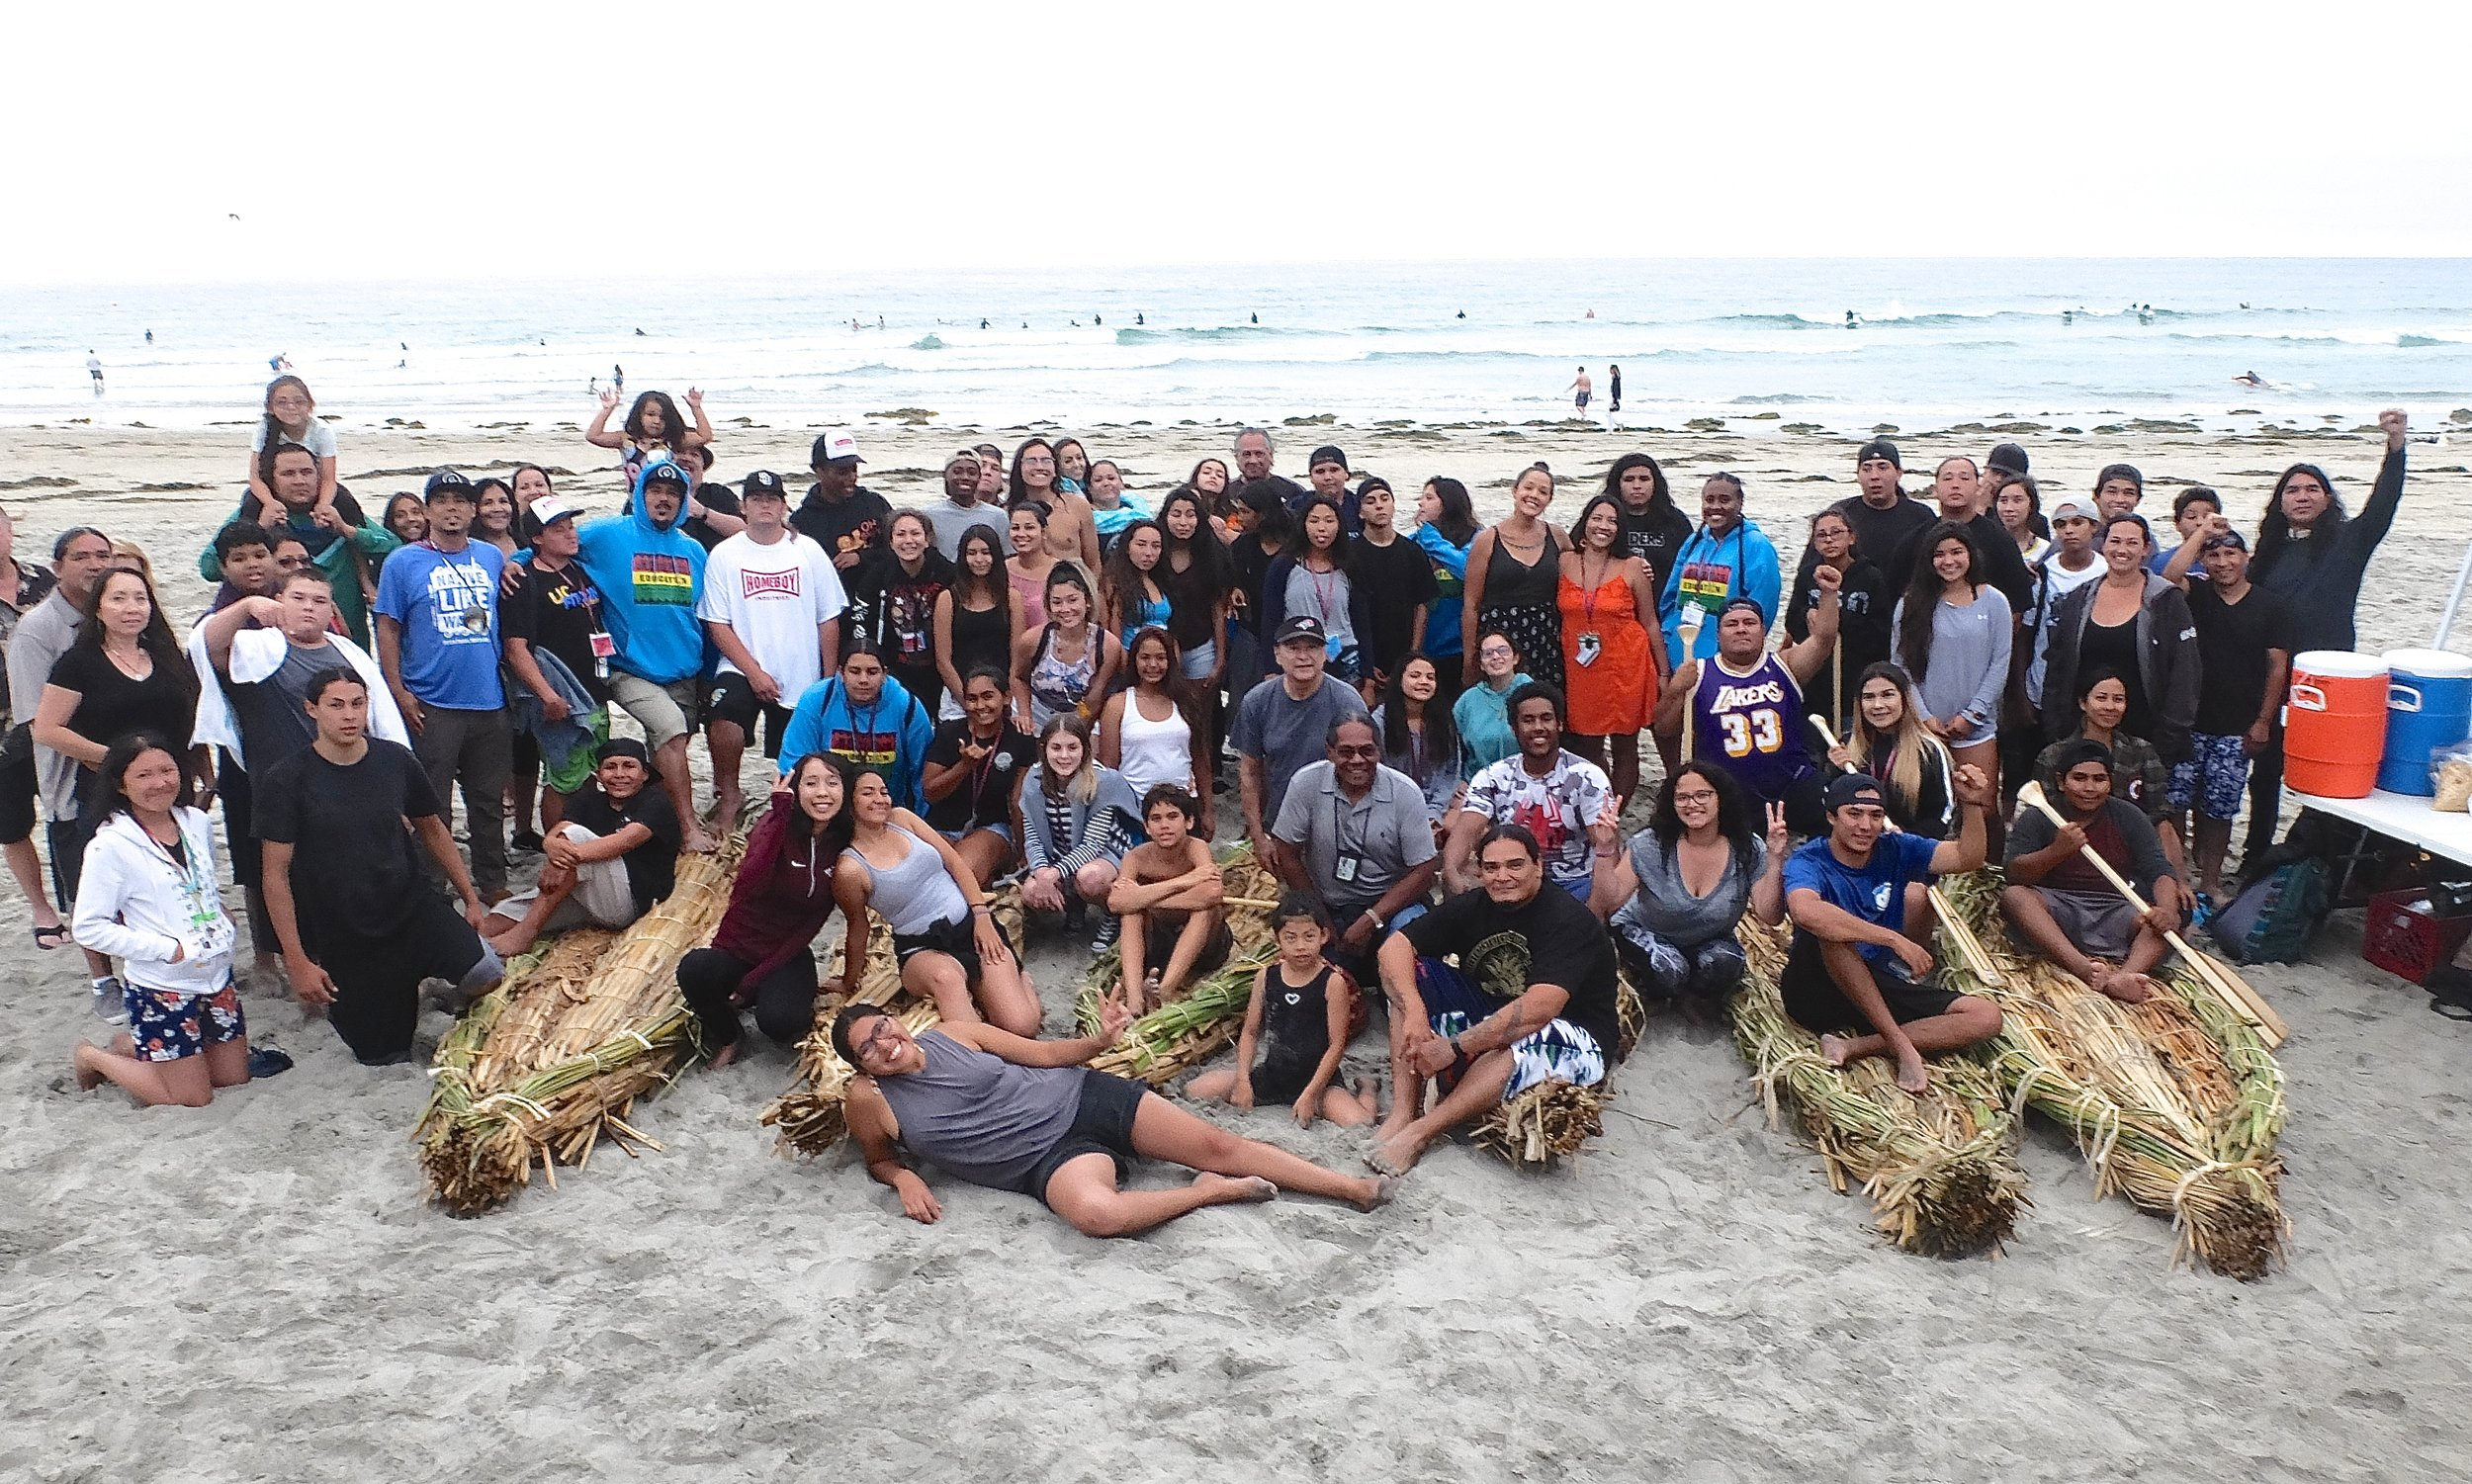 flagship Southern California residential program. over 35 youth, and 30 professional mentors gather for quantum learning, leadership, culture, wellness and science, indigenous higher education. #Indigenizeeducation